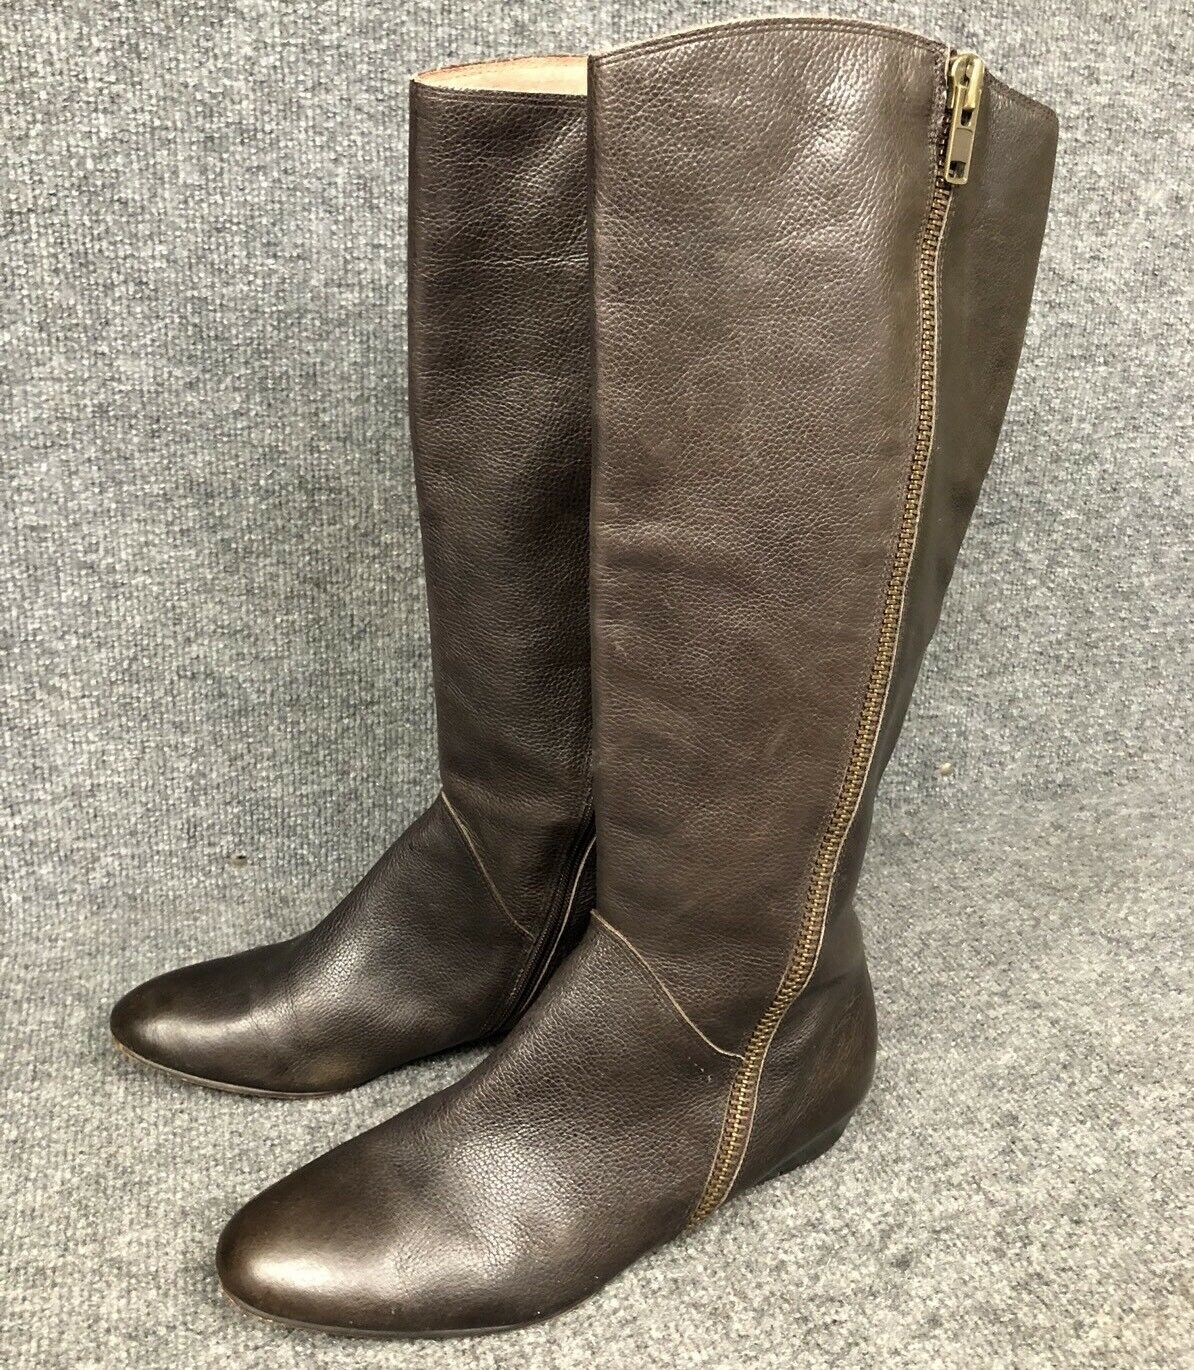 CORSO COMO TALL BROWN LEATHER BOOTS SZ 11M  MSRP9+ IN EUC